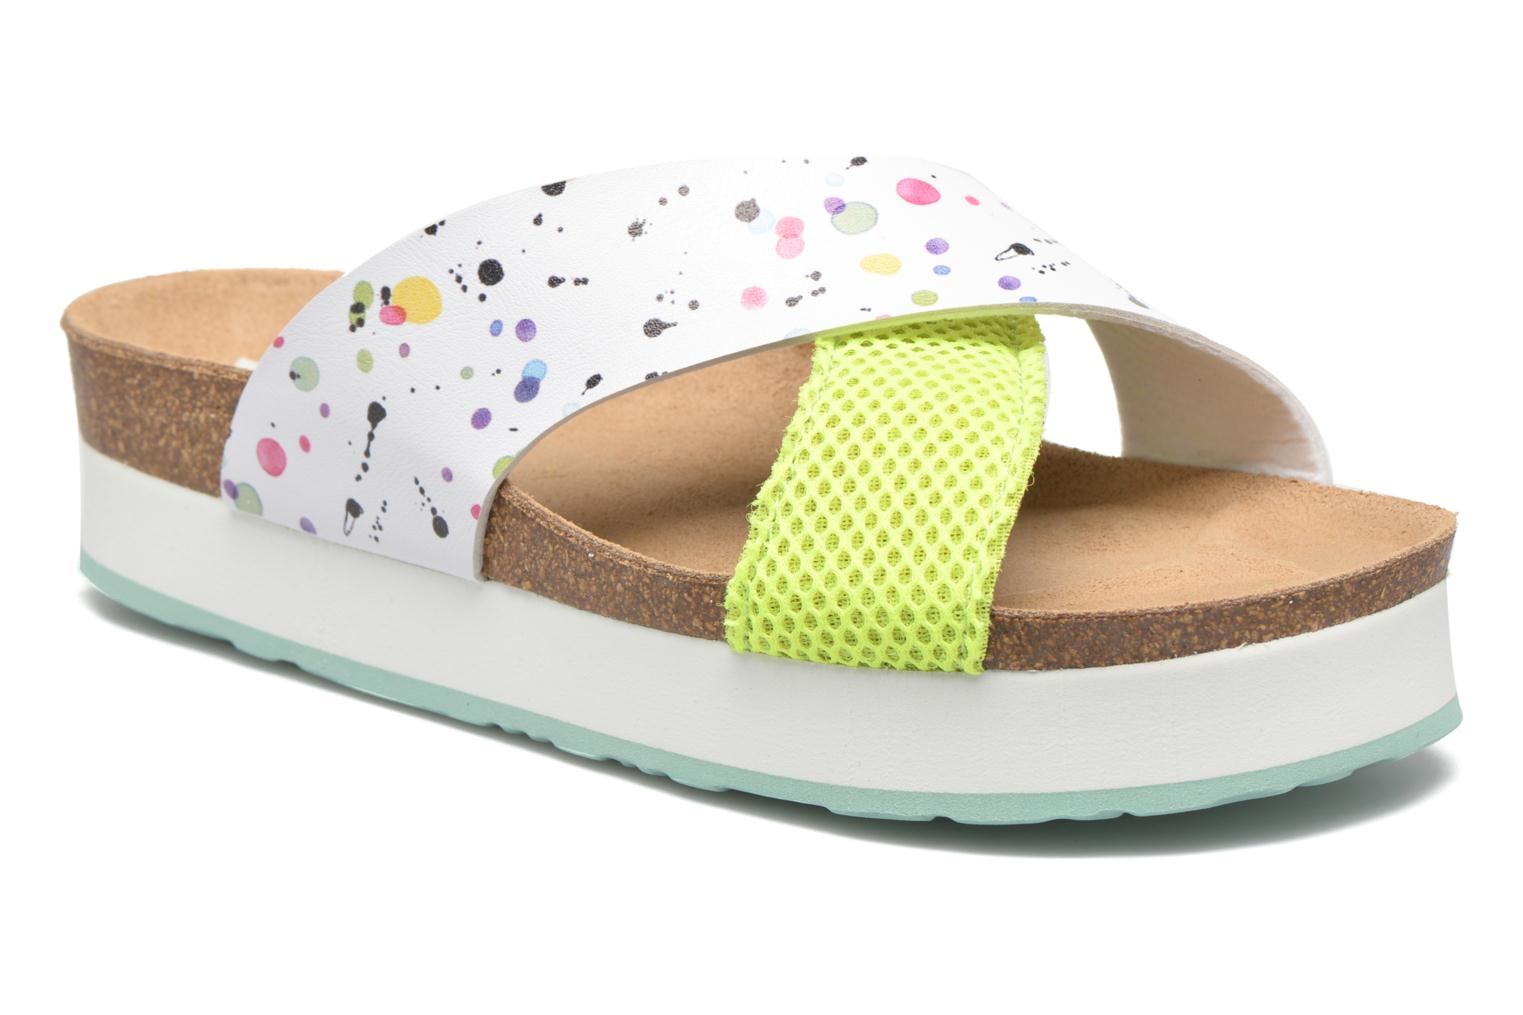 SHOES_BIO 10 MEGARA 4 4141 BEACH GLASS